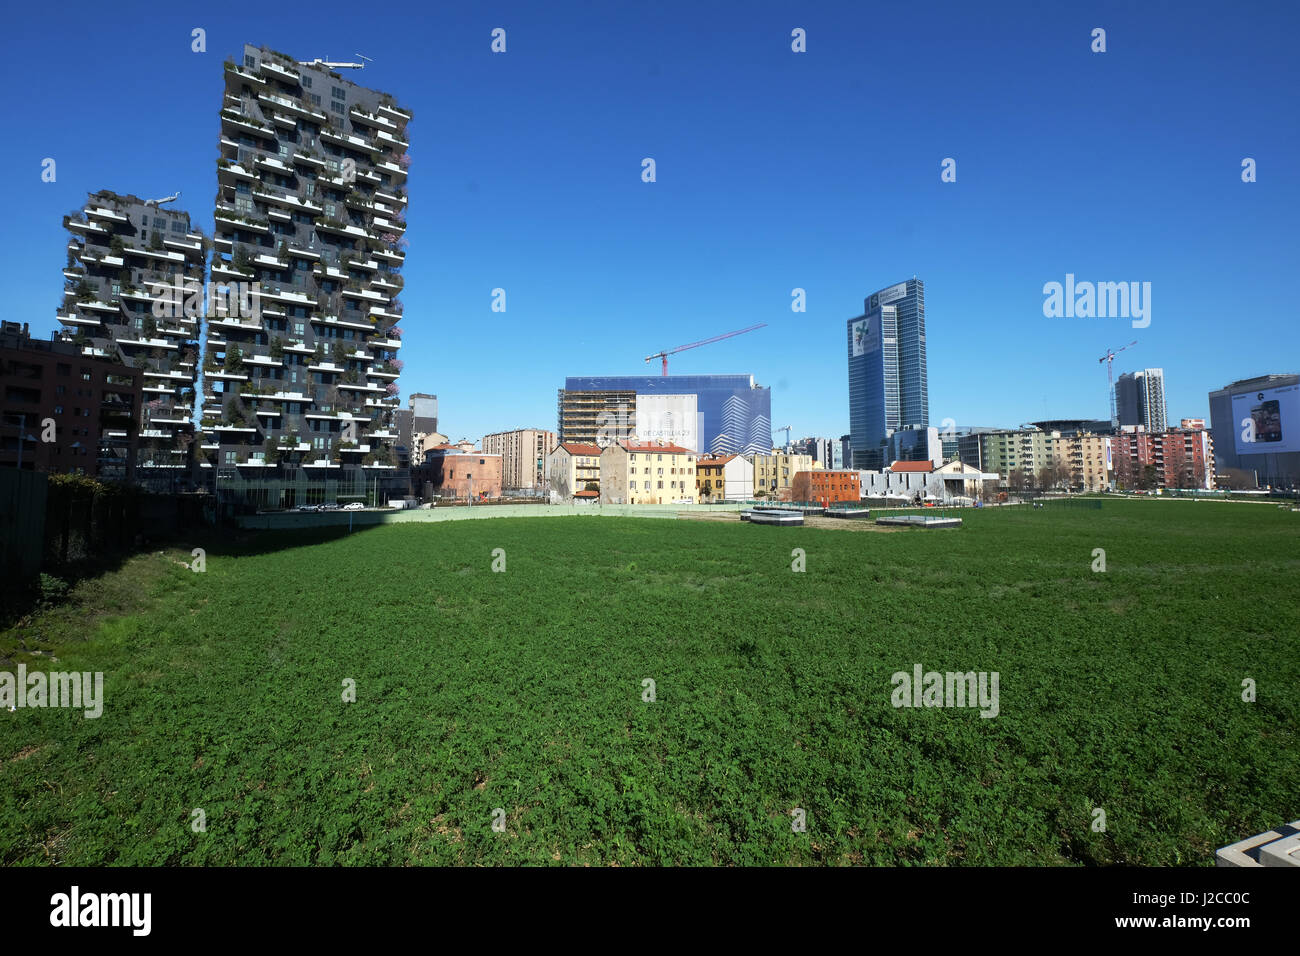 Vertical Forest Residential Towers in Milan, Italy - Stock Image